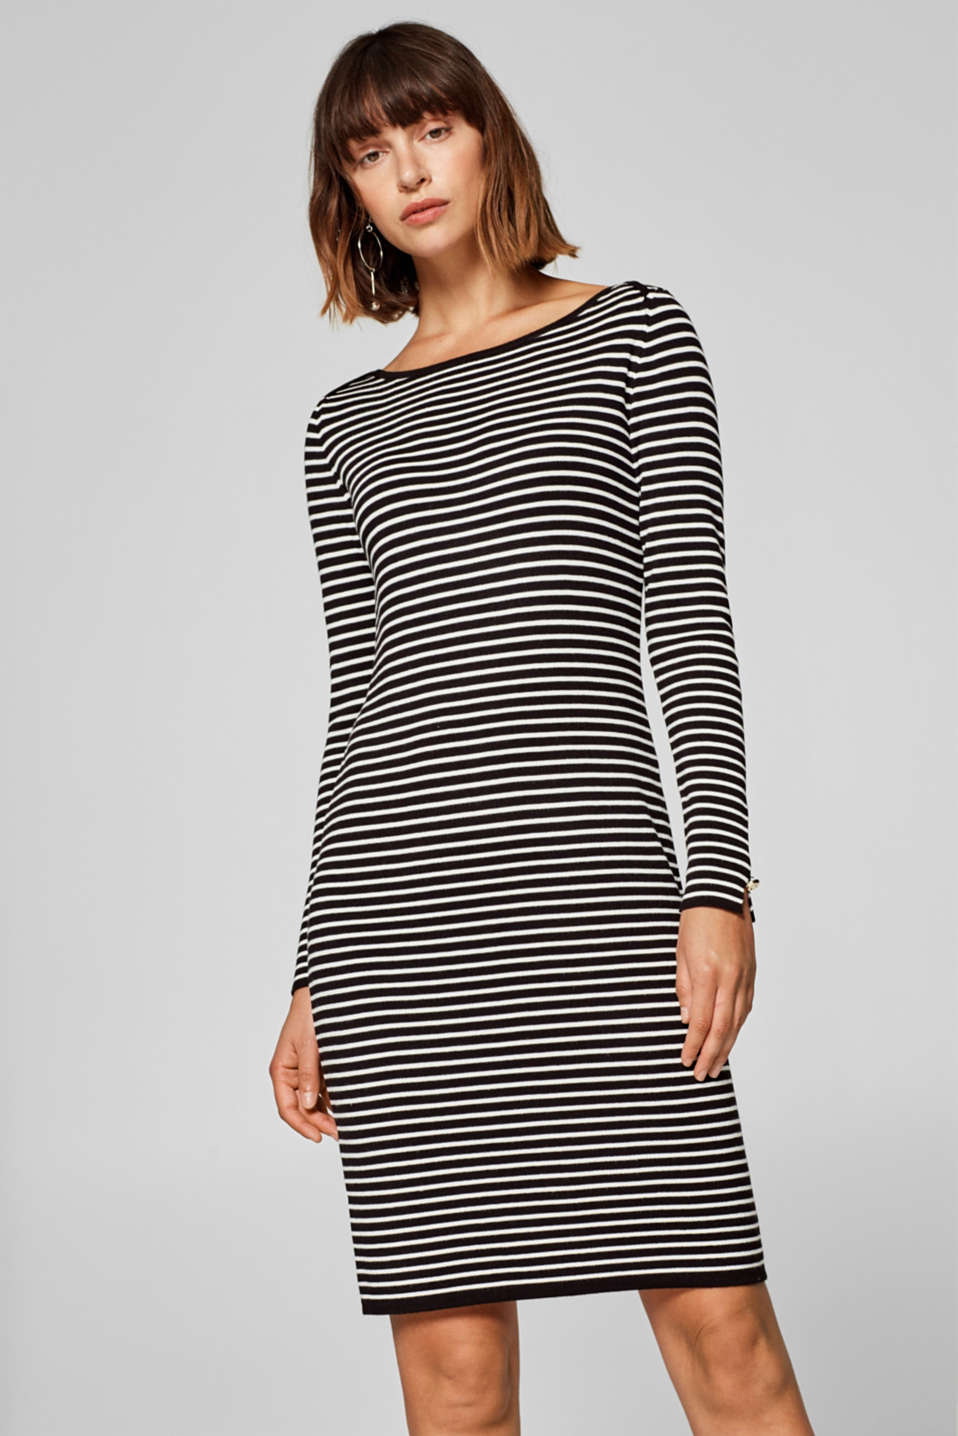 Esprit - Basic dress made of fine, ribbed yarn